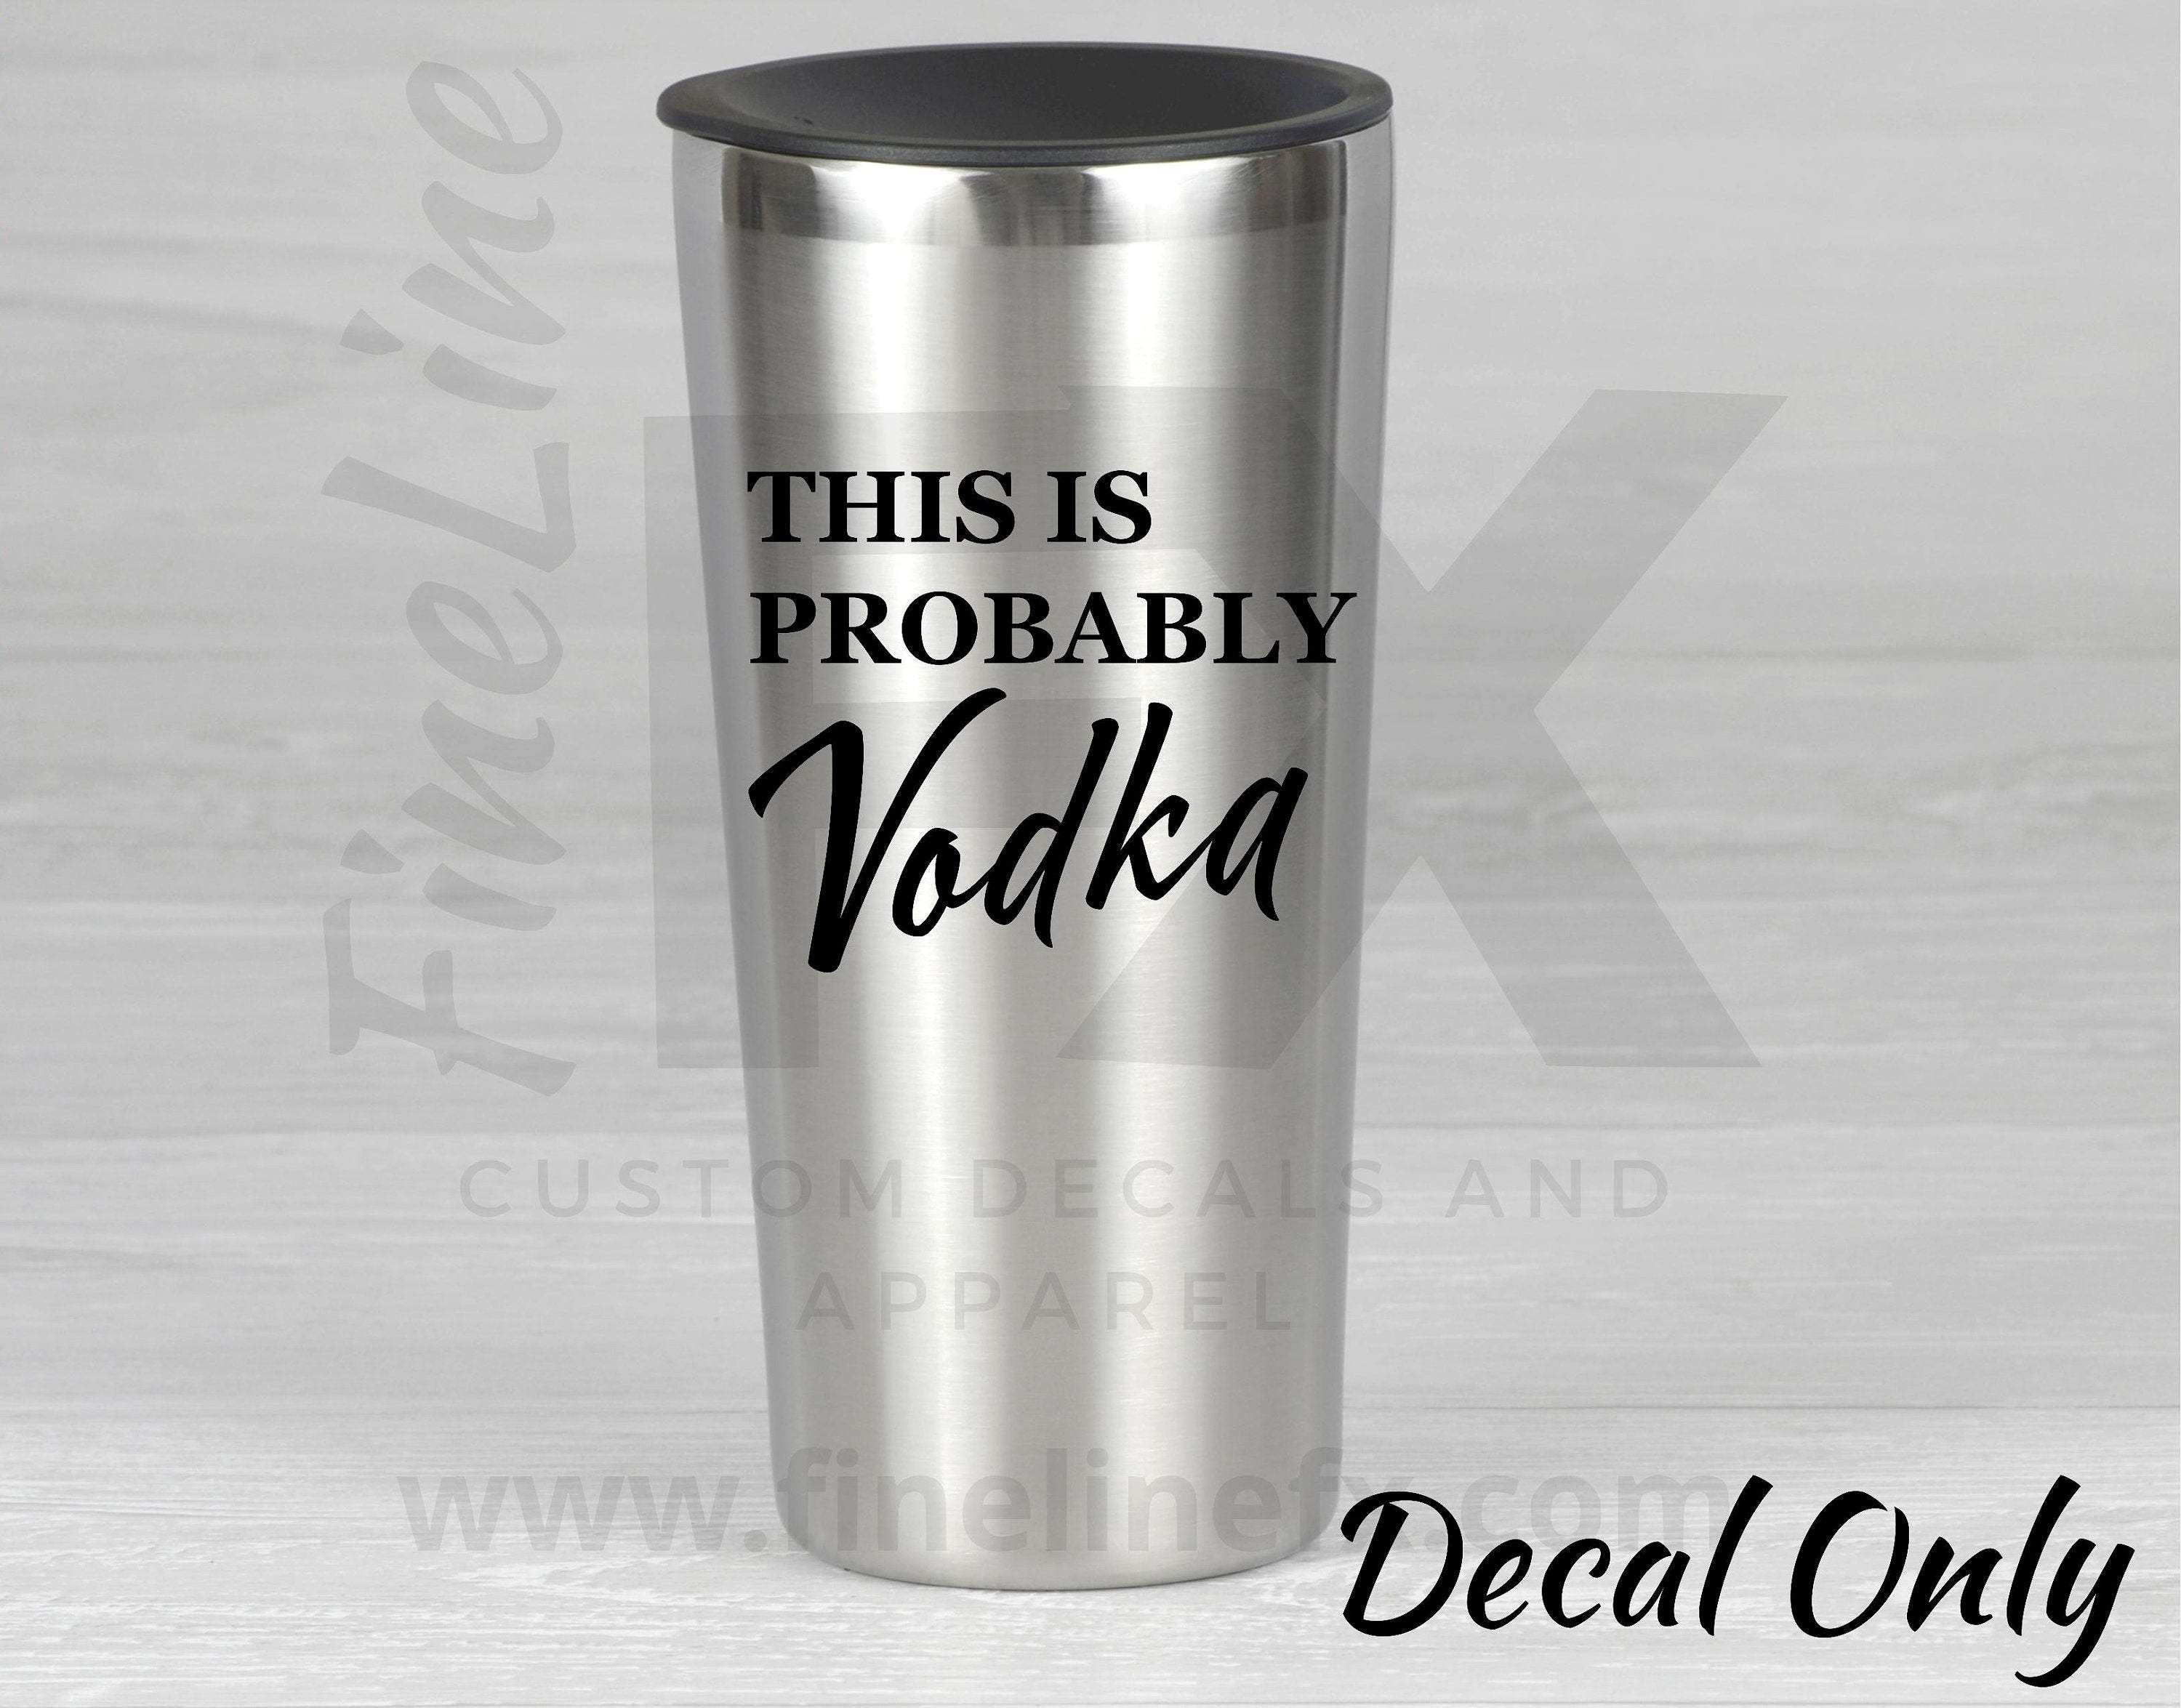 This Is Probably Vodka Vinyl Decal Sticker Vinyl Decal Stickers Vinyl Decals Car Decals Vinyl [ jpg ]